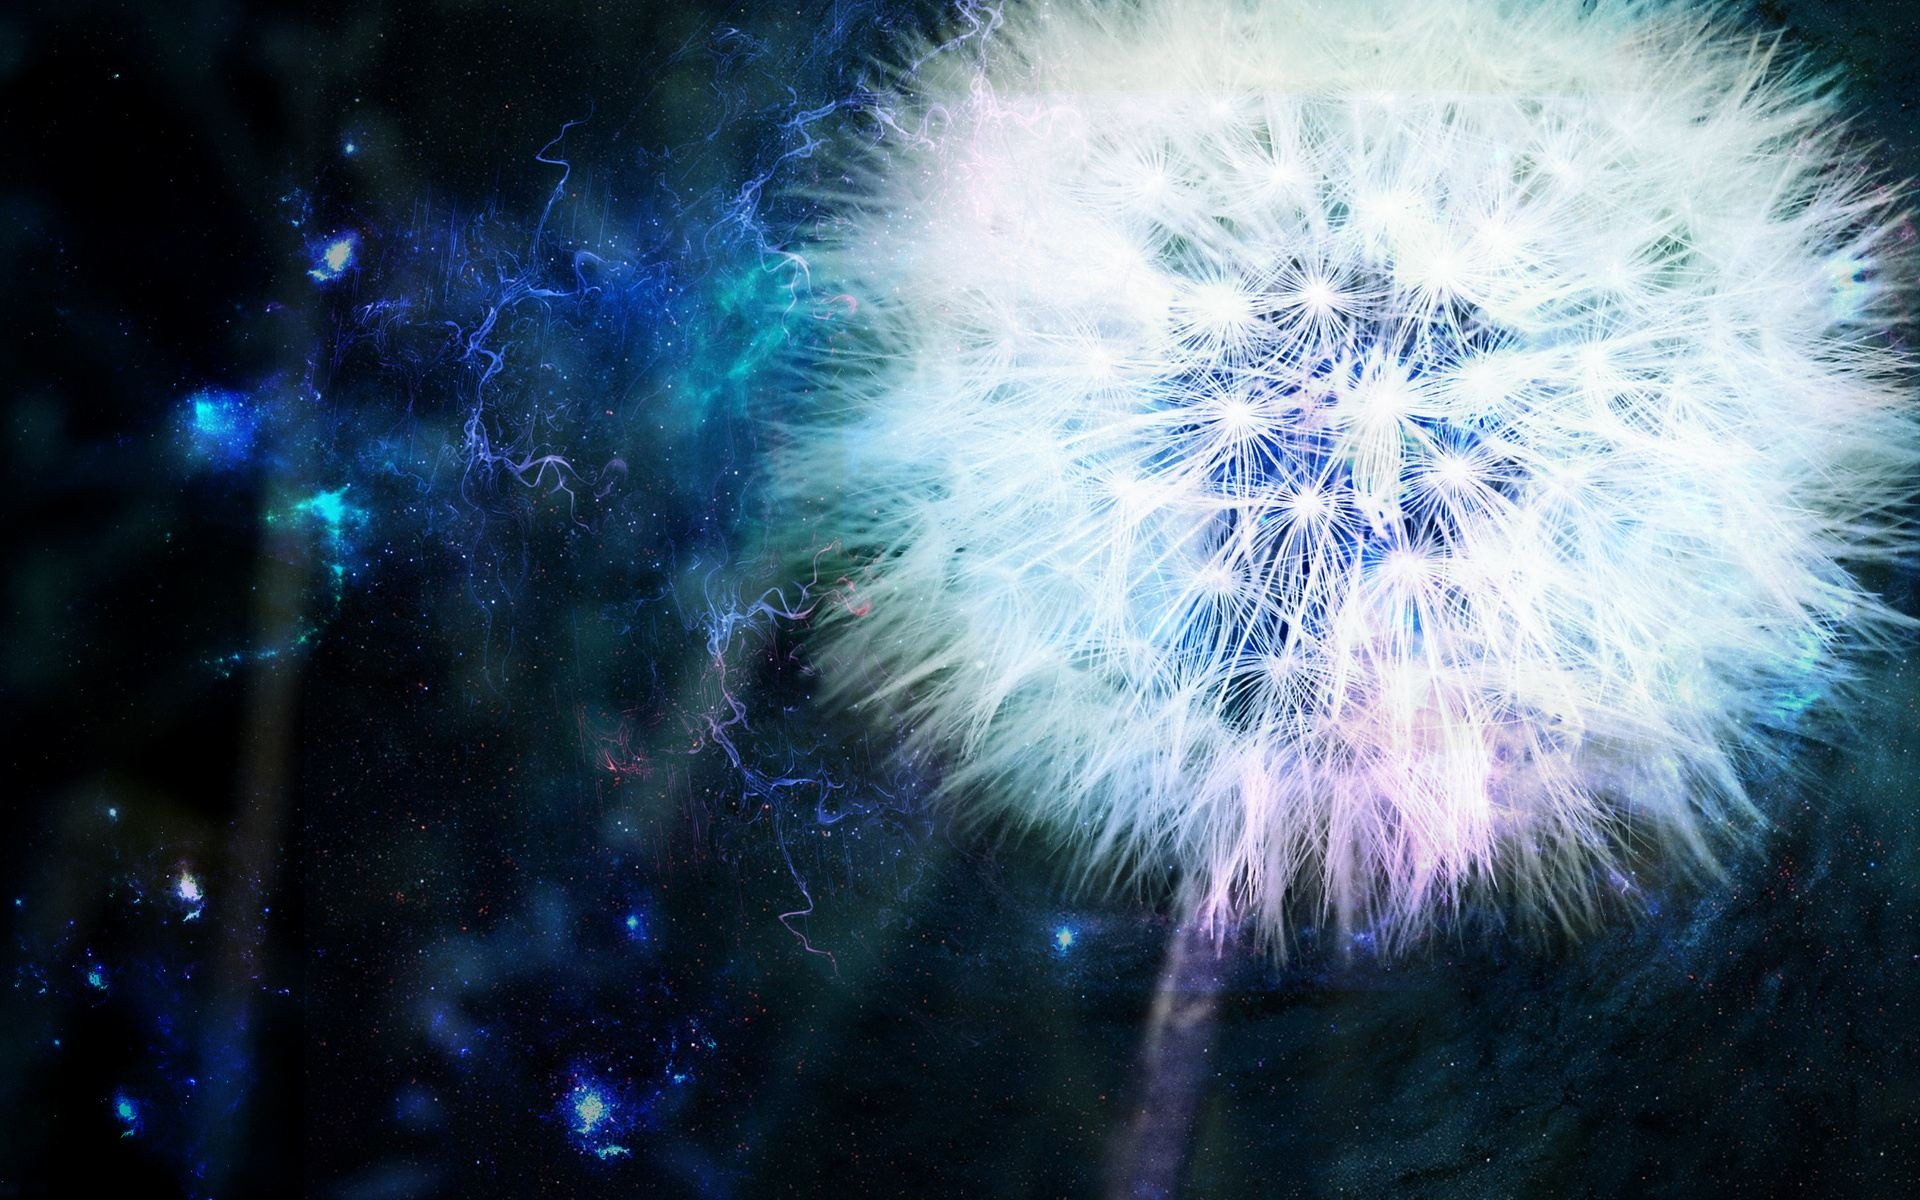 Dandelion-Background-Wallpapers-HD-Free-Download-07